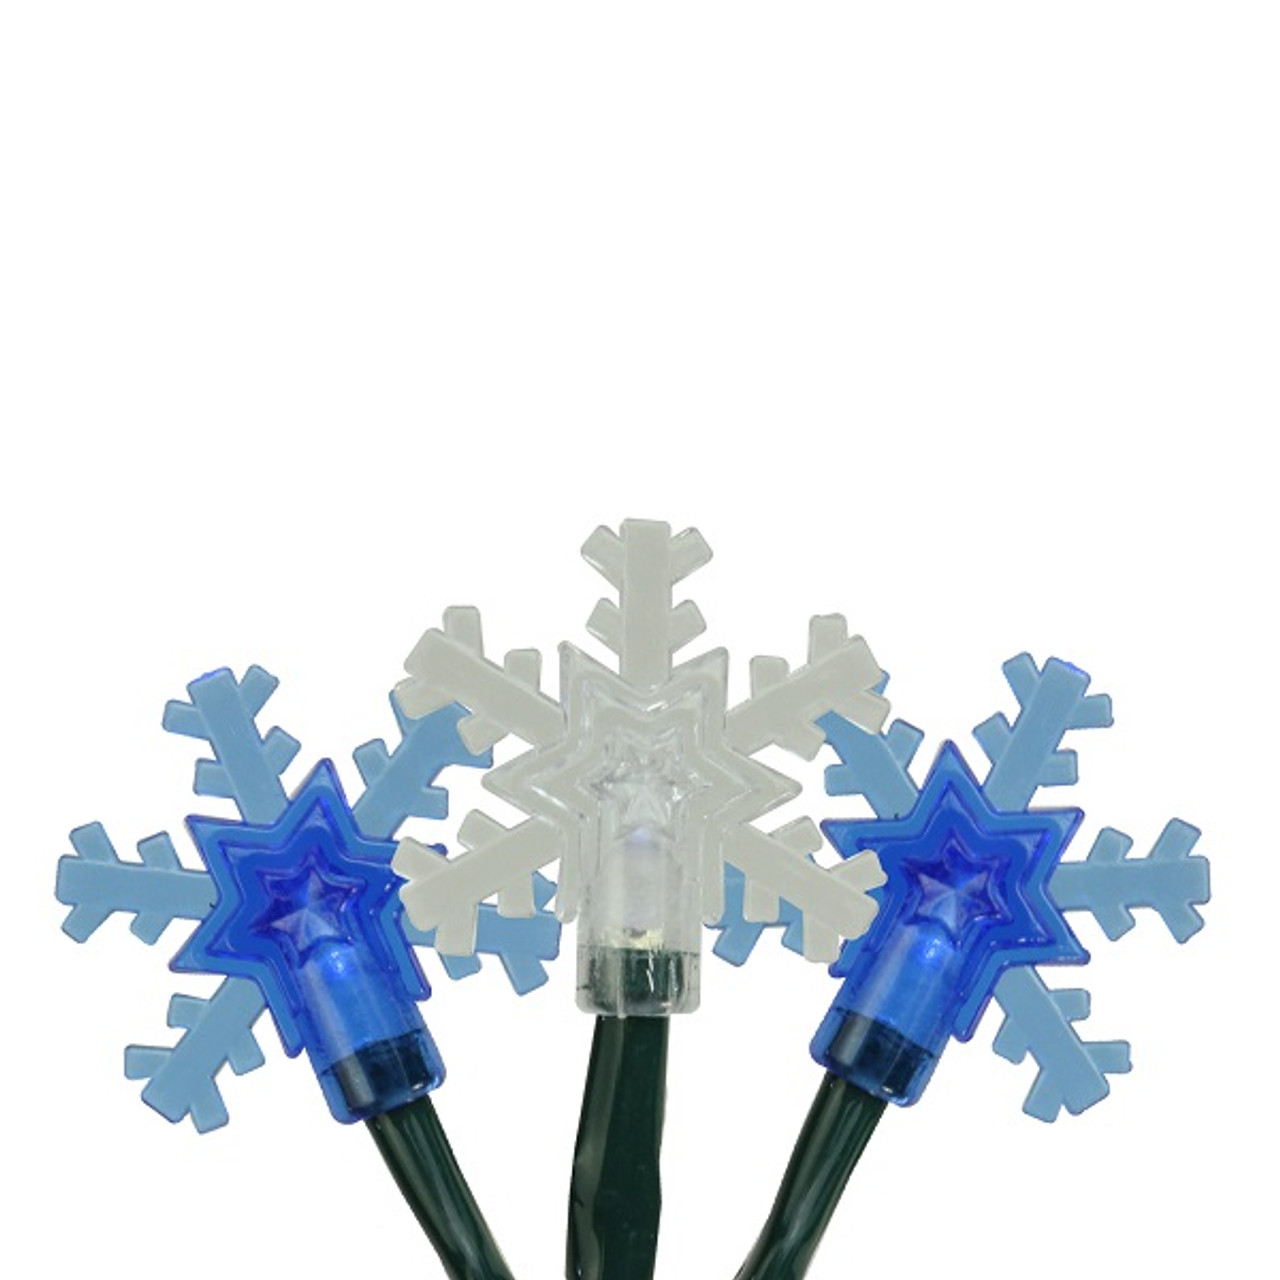 White Background With Light Blue Snowflakes Falling Down ...  |Snowflake Blue And White Lights